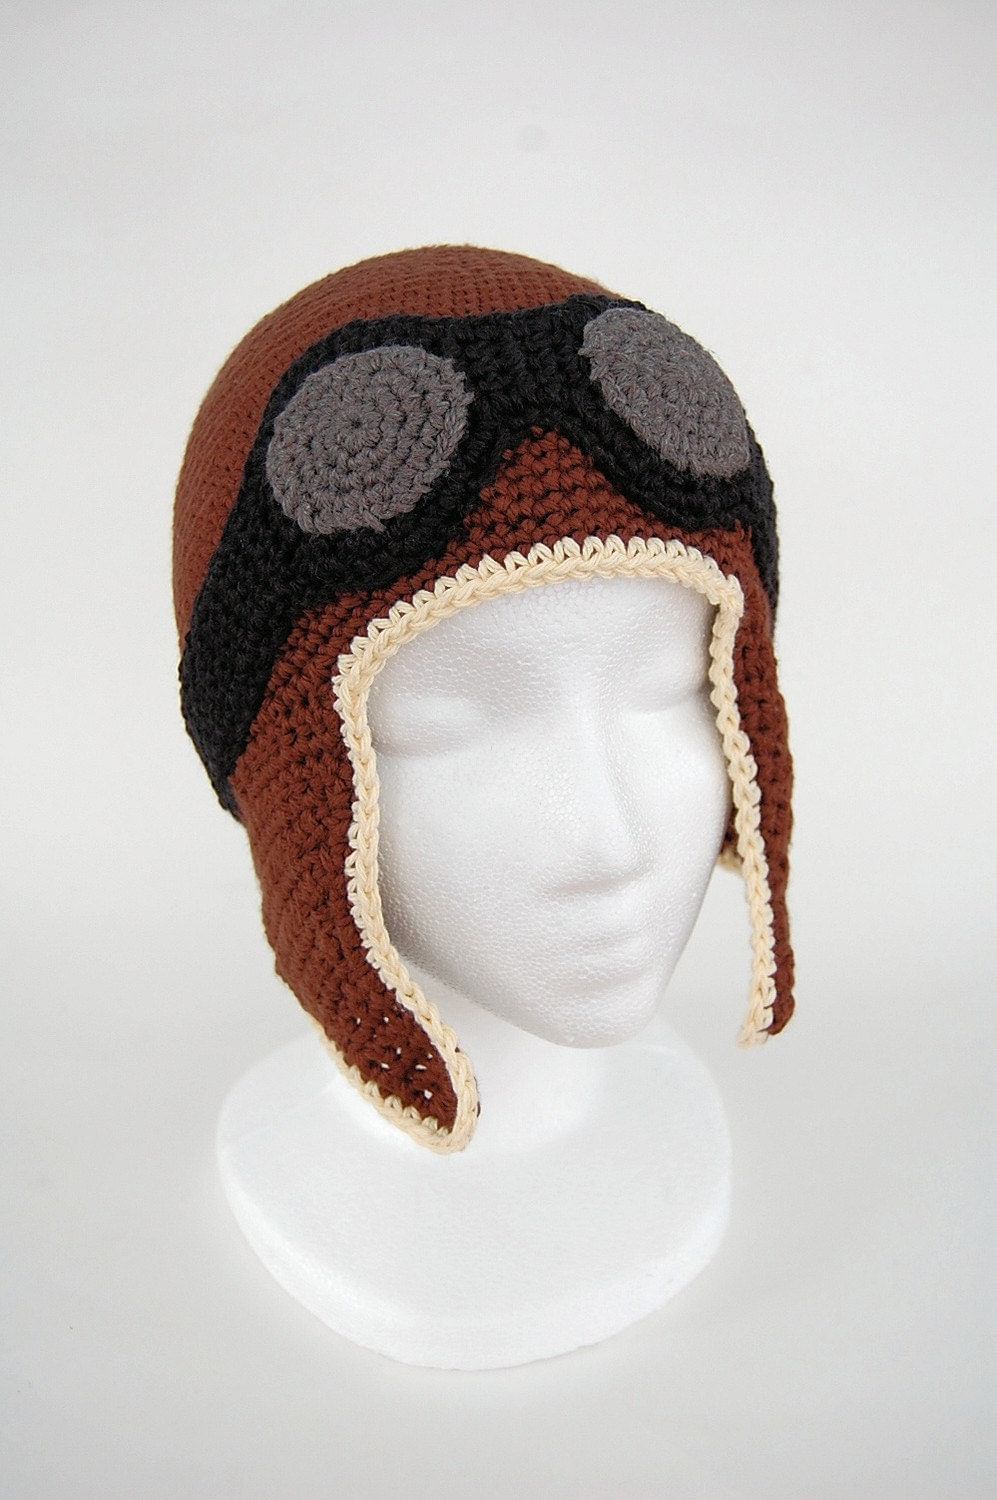 crocheted aviator hat by Knot By Gran'ma